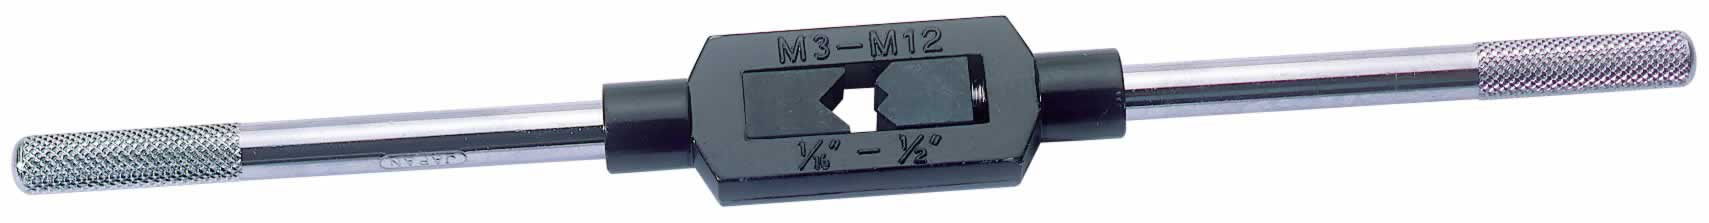 225MM AMERICAN PATTERN TAP WRENCH